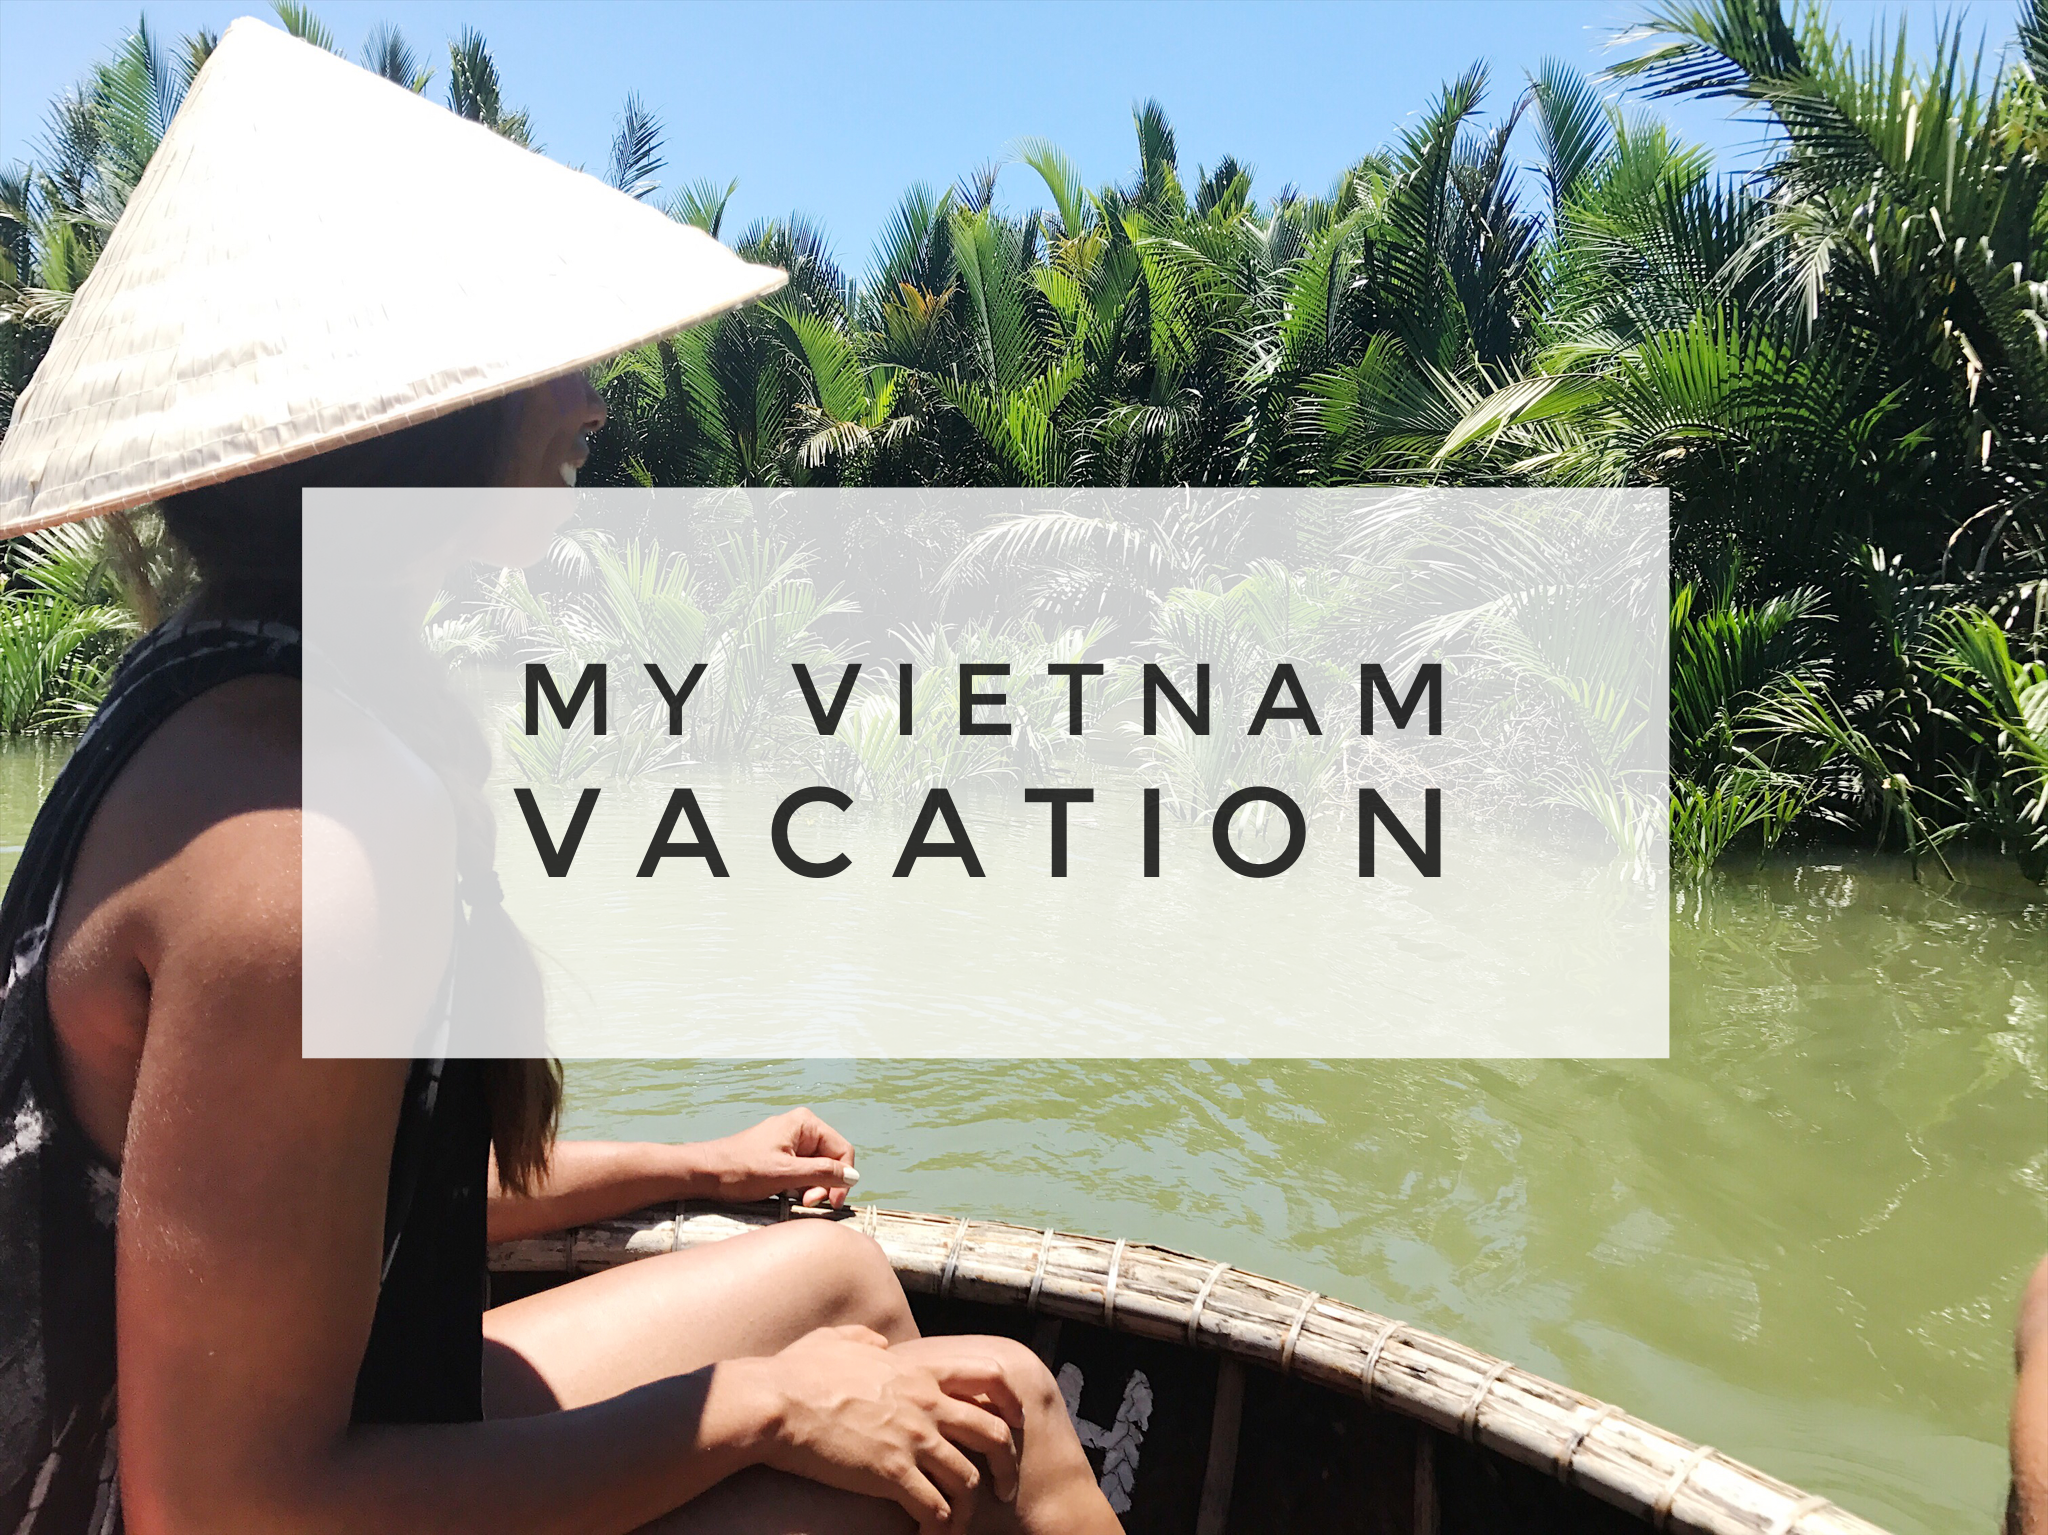 How to plan a vacation to Vietnam